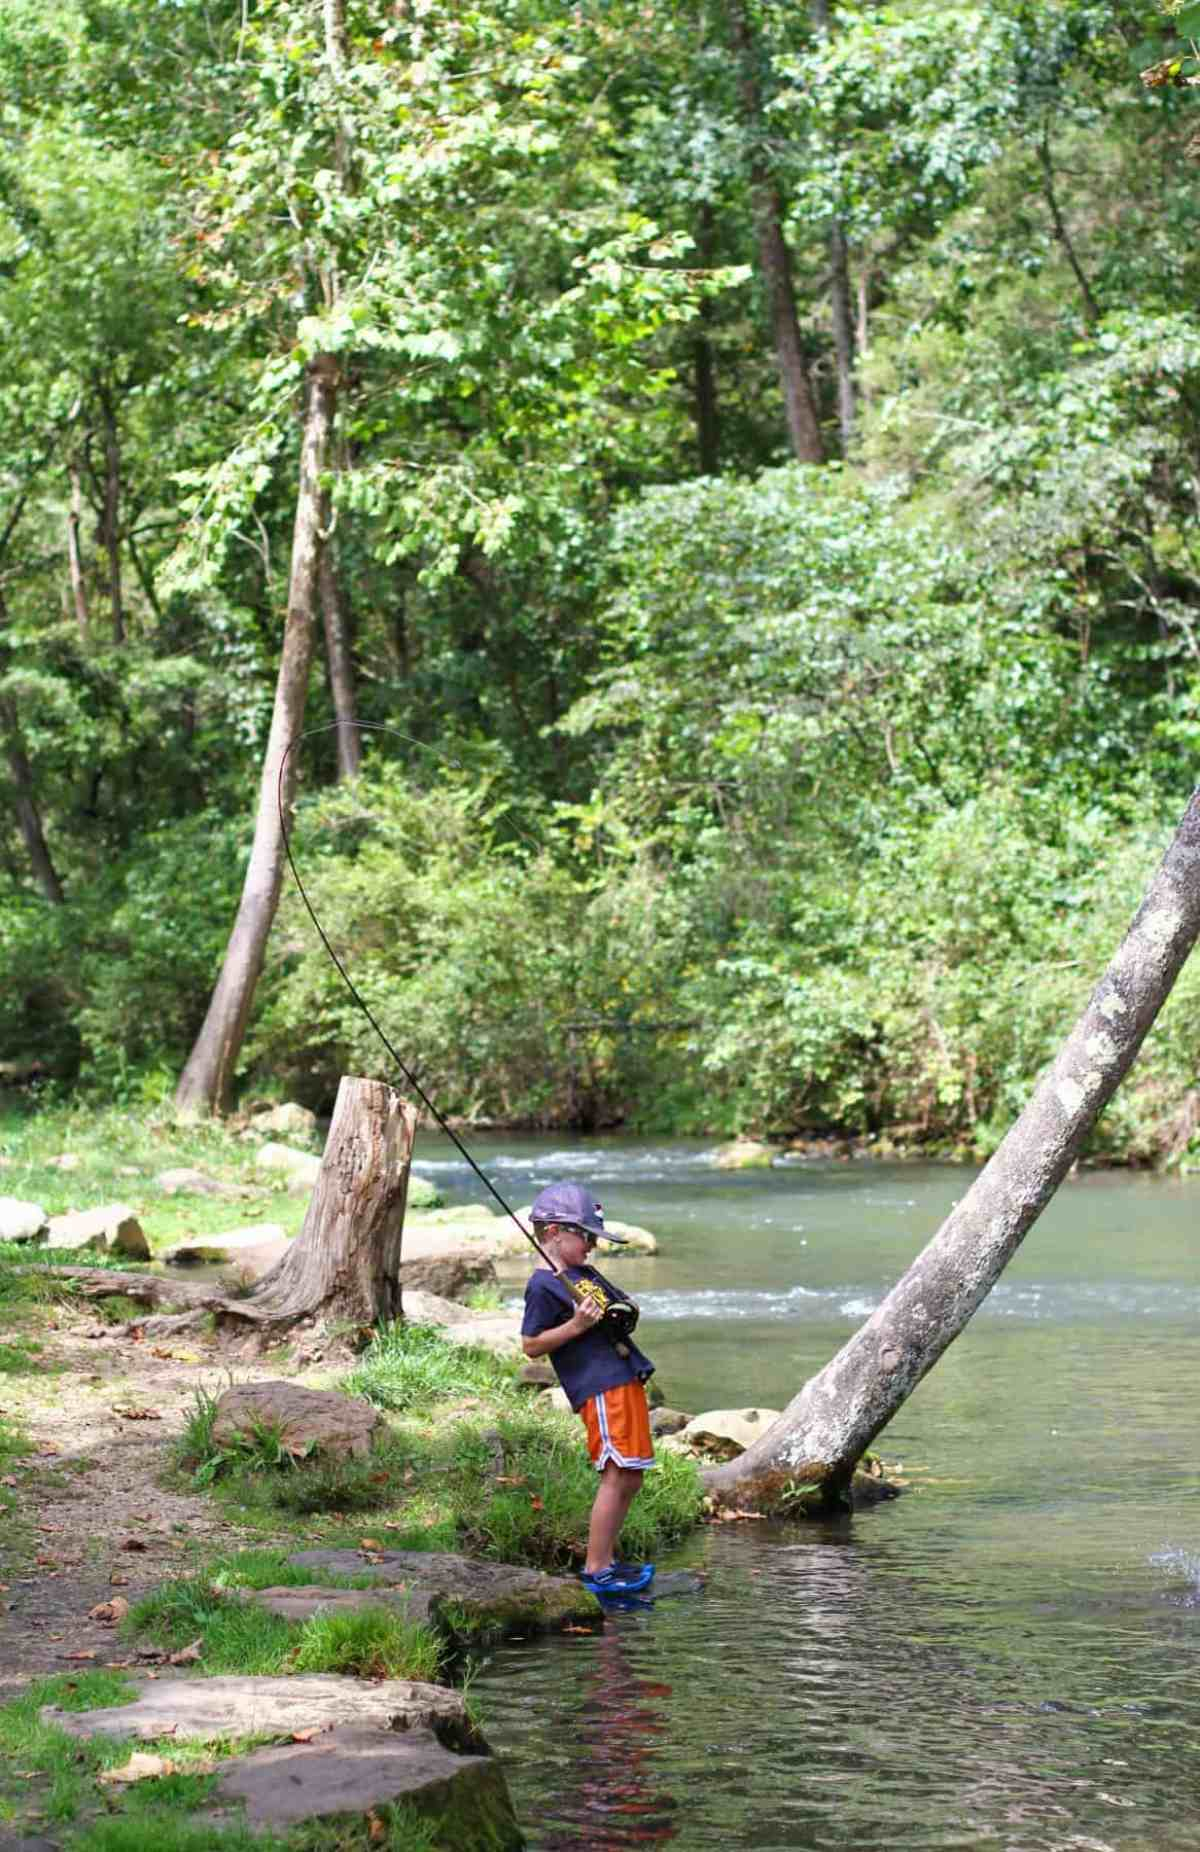 Fly Fishing for Trout with Kids at Dry Run Creek, Arkansas